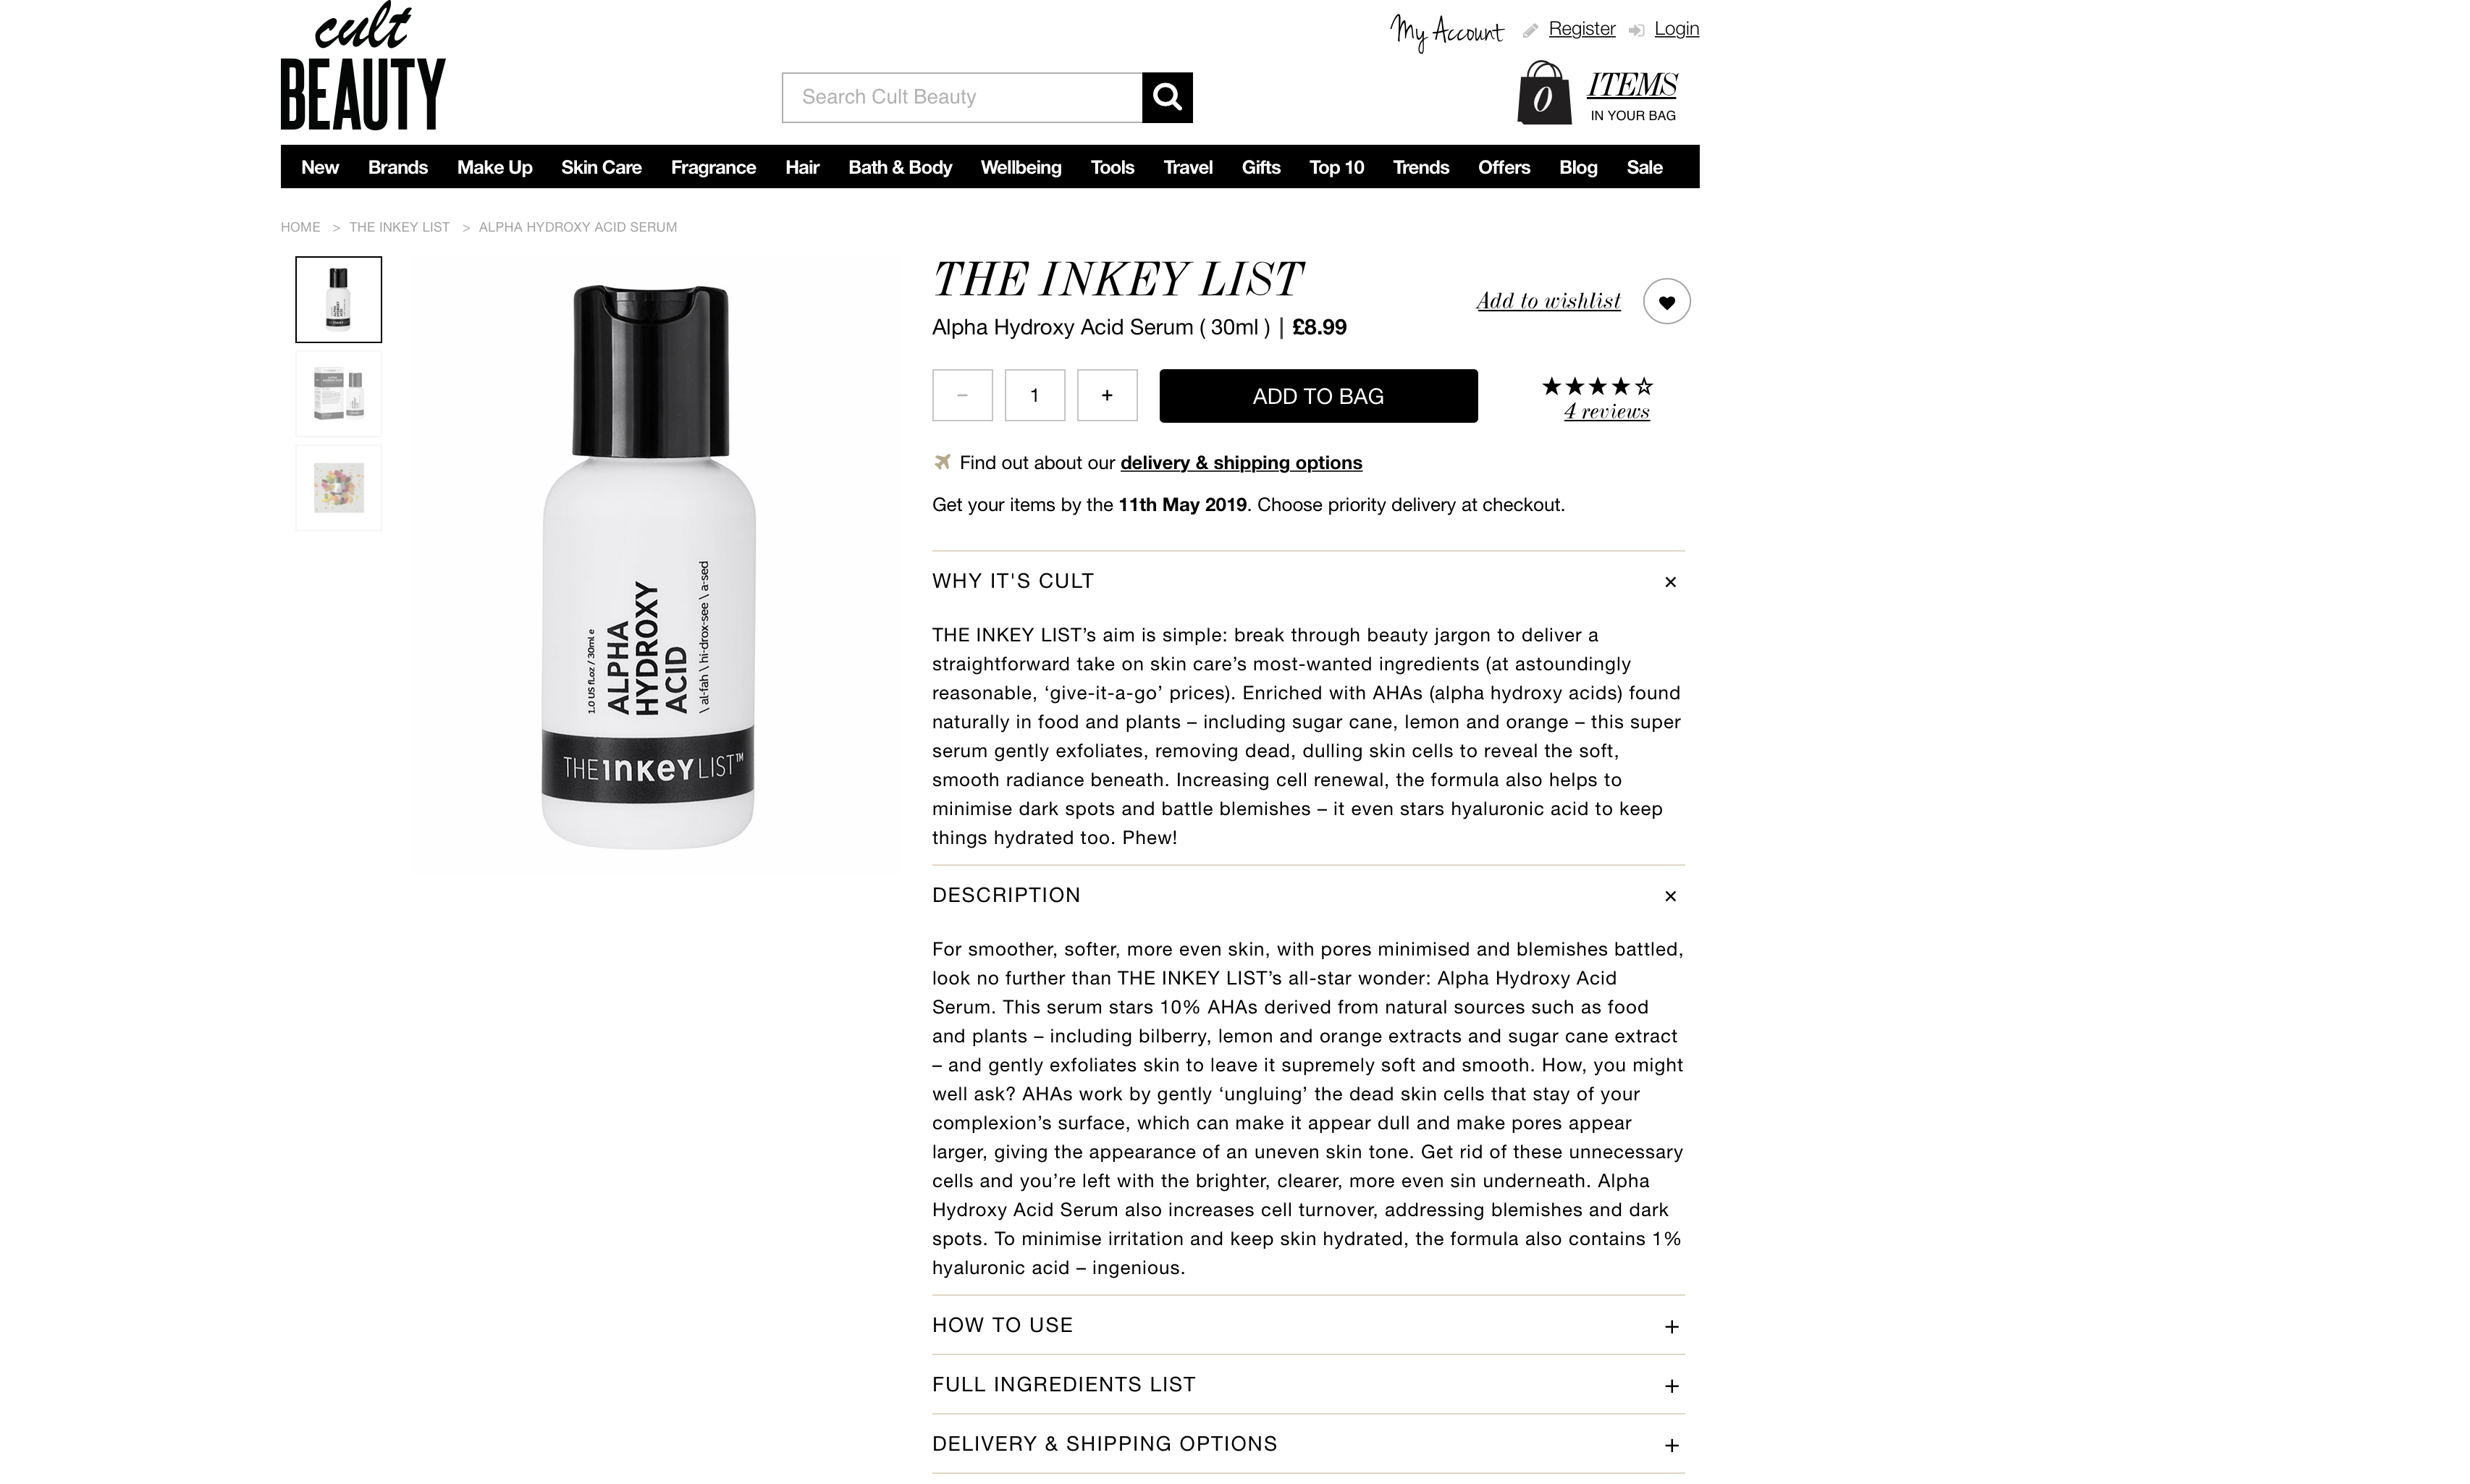 The Inkey List Alpha Hydroxy Acid Serum